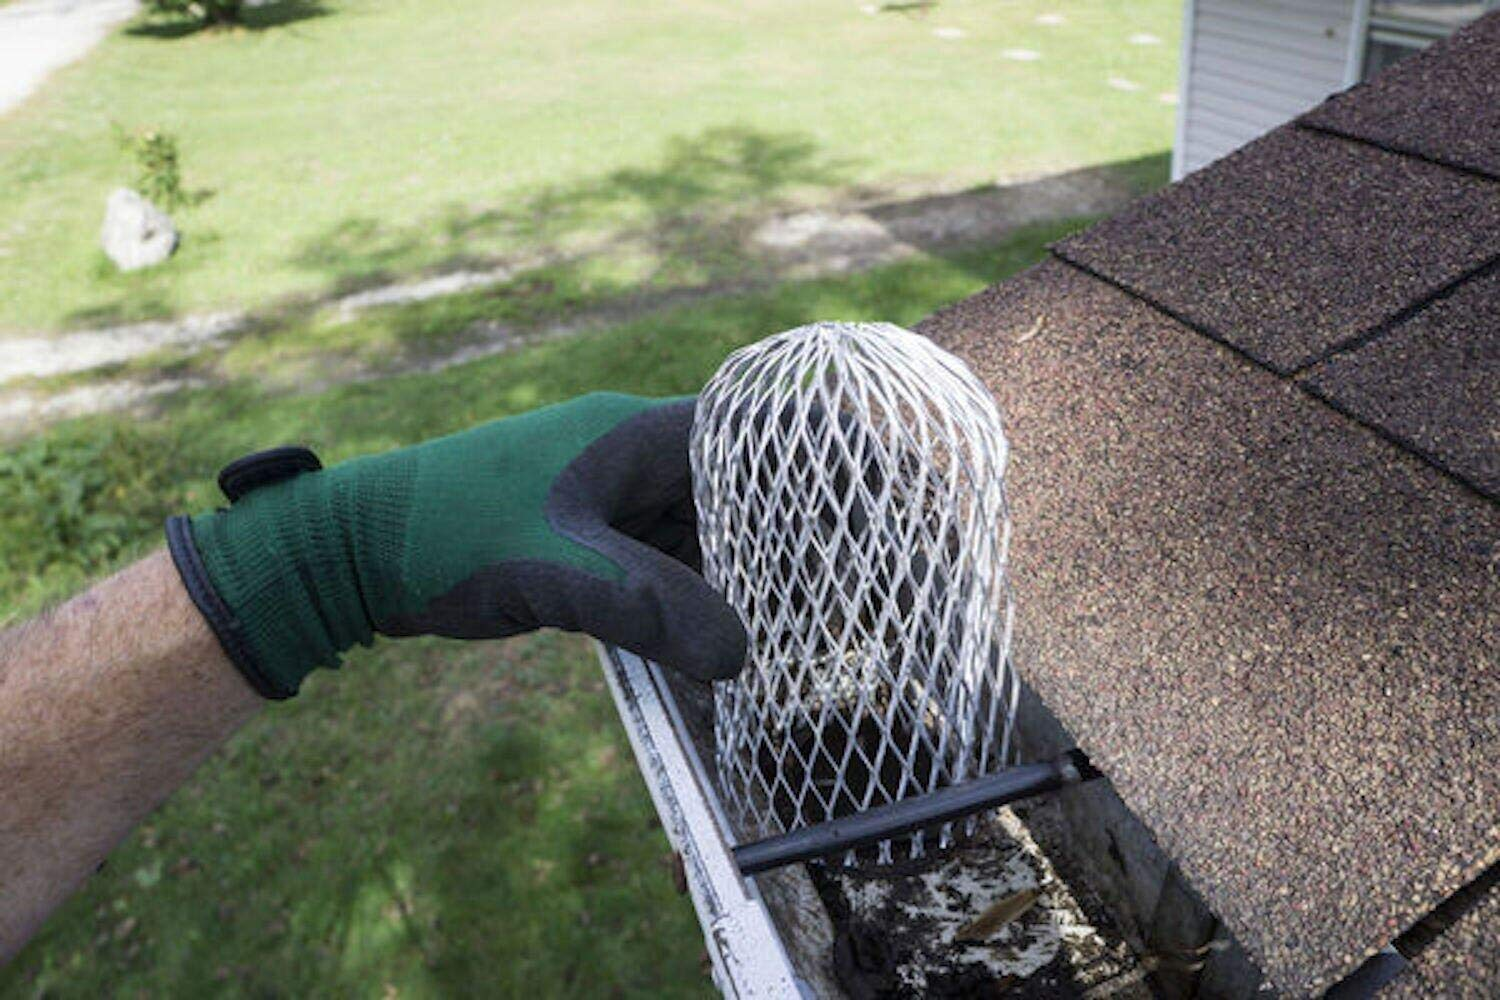 Incly 6 Pack Gutter Guard Strainer 3 Inch Downspouts Filter Keeps Unclogging